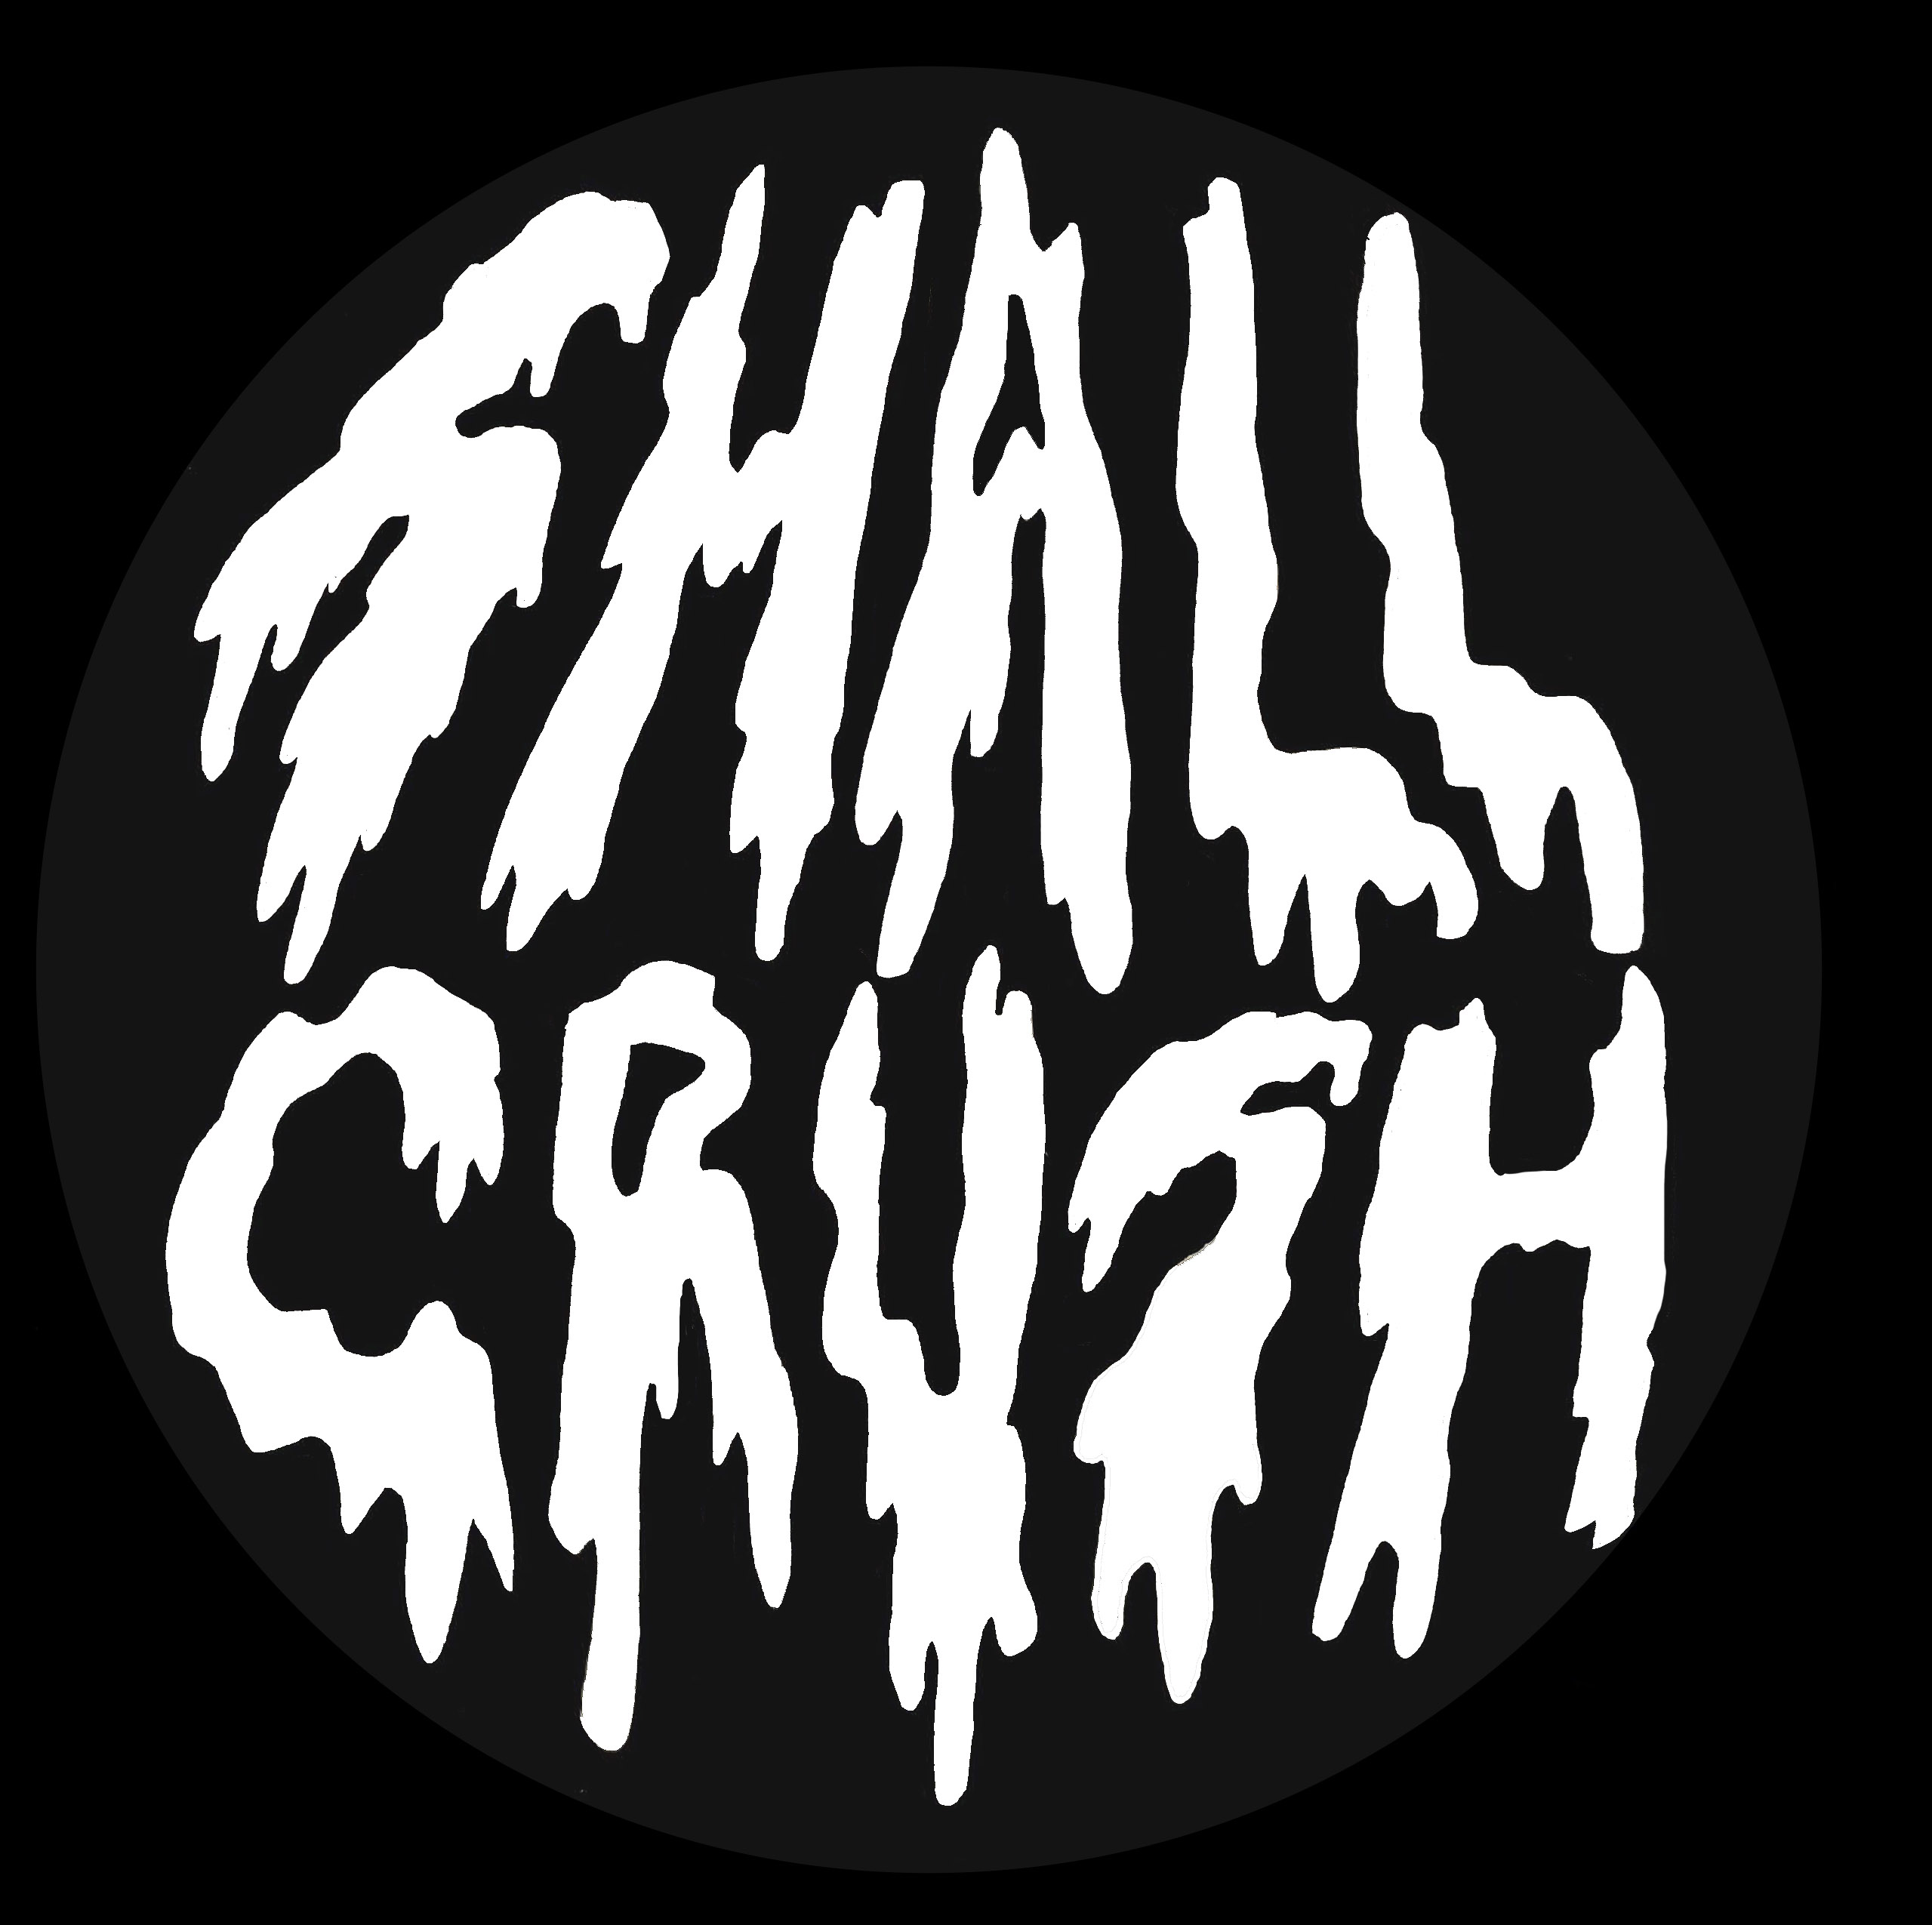 Small Crush Sticker